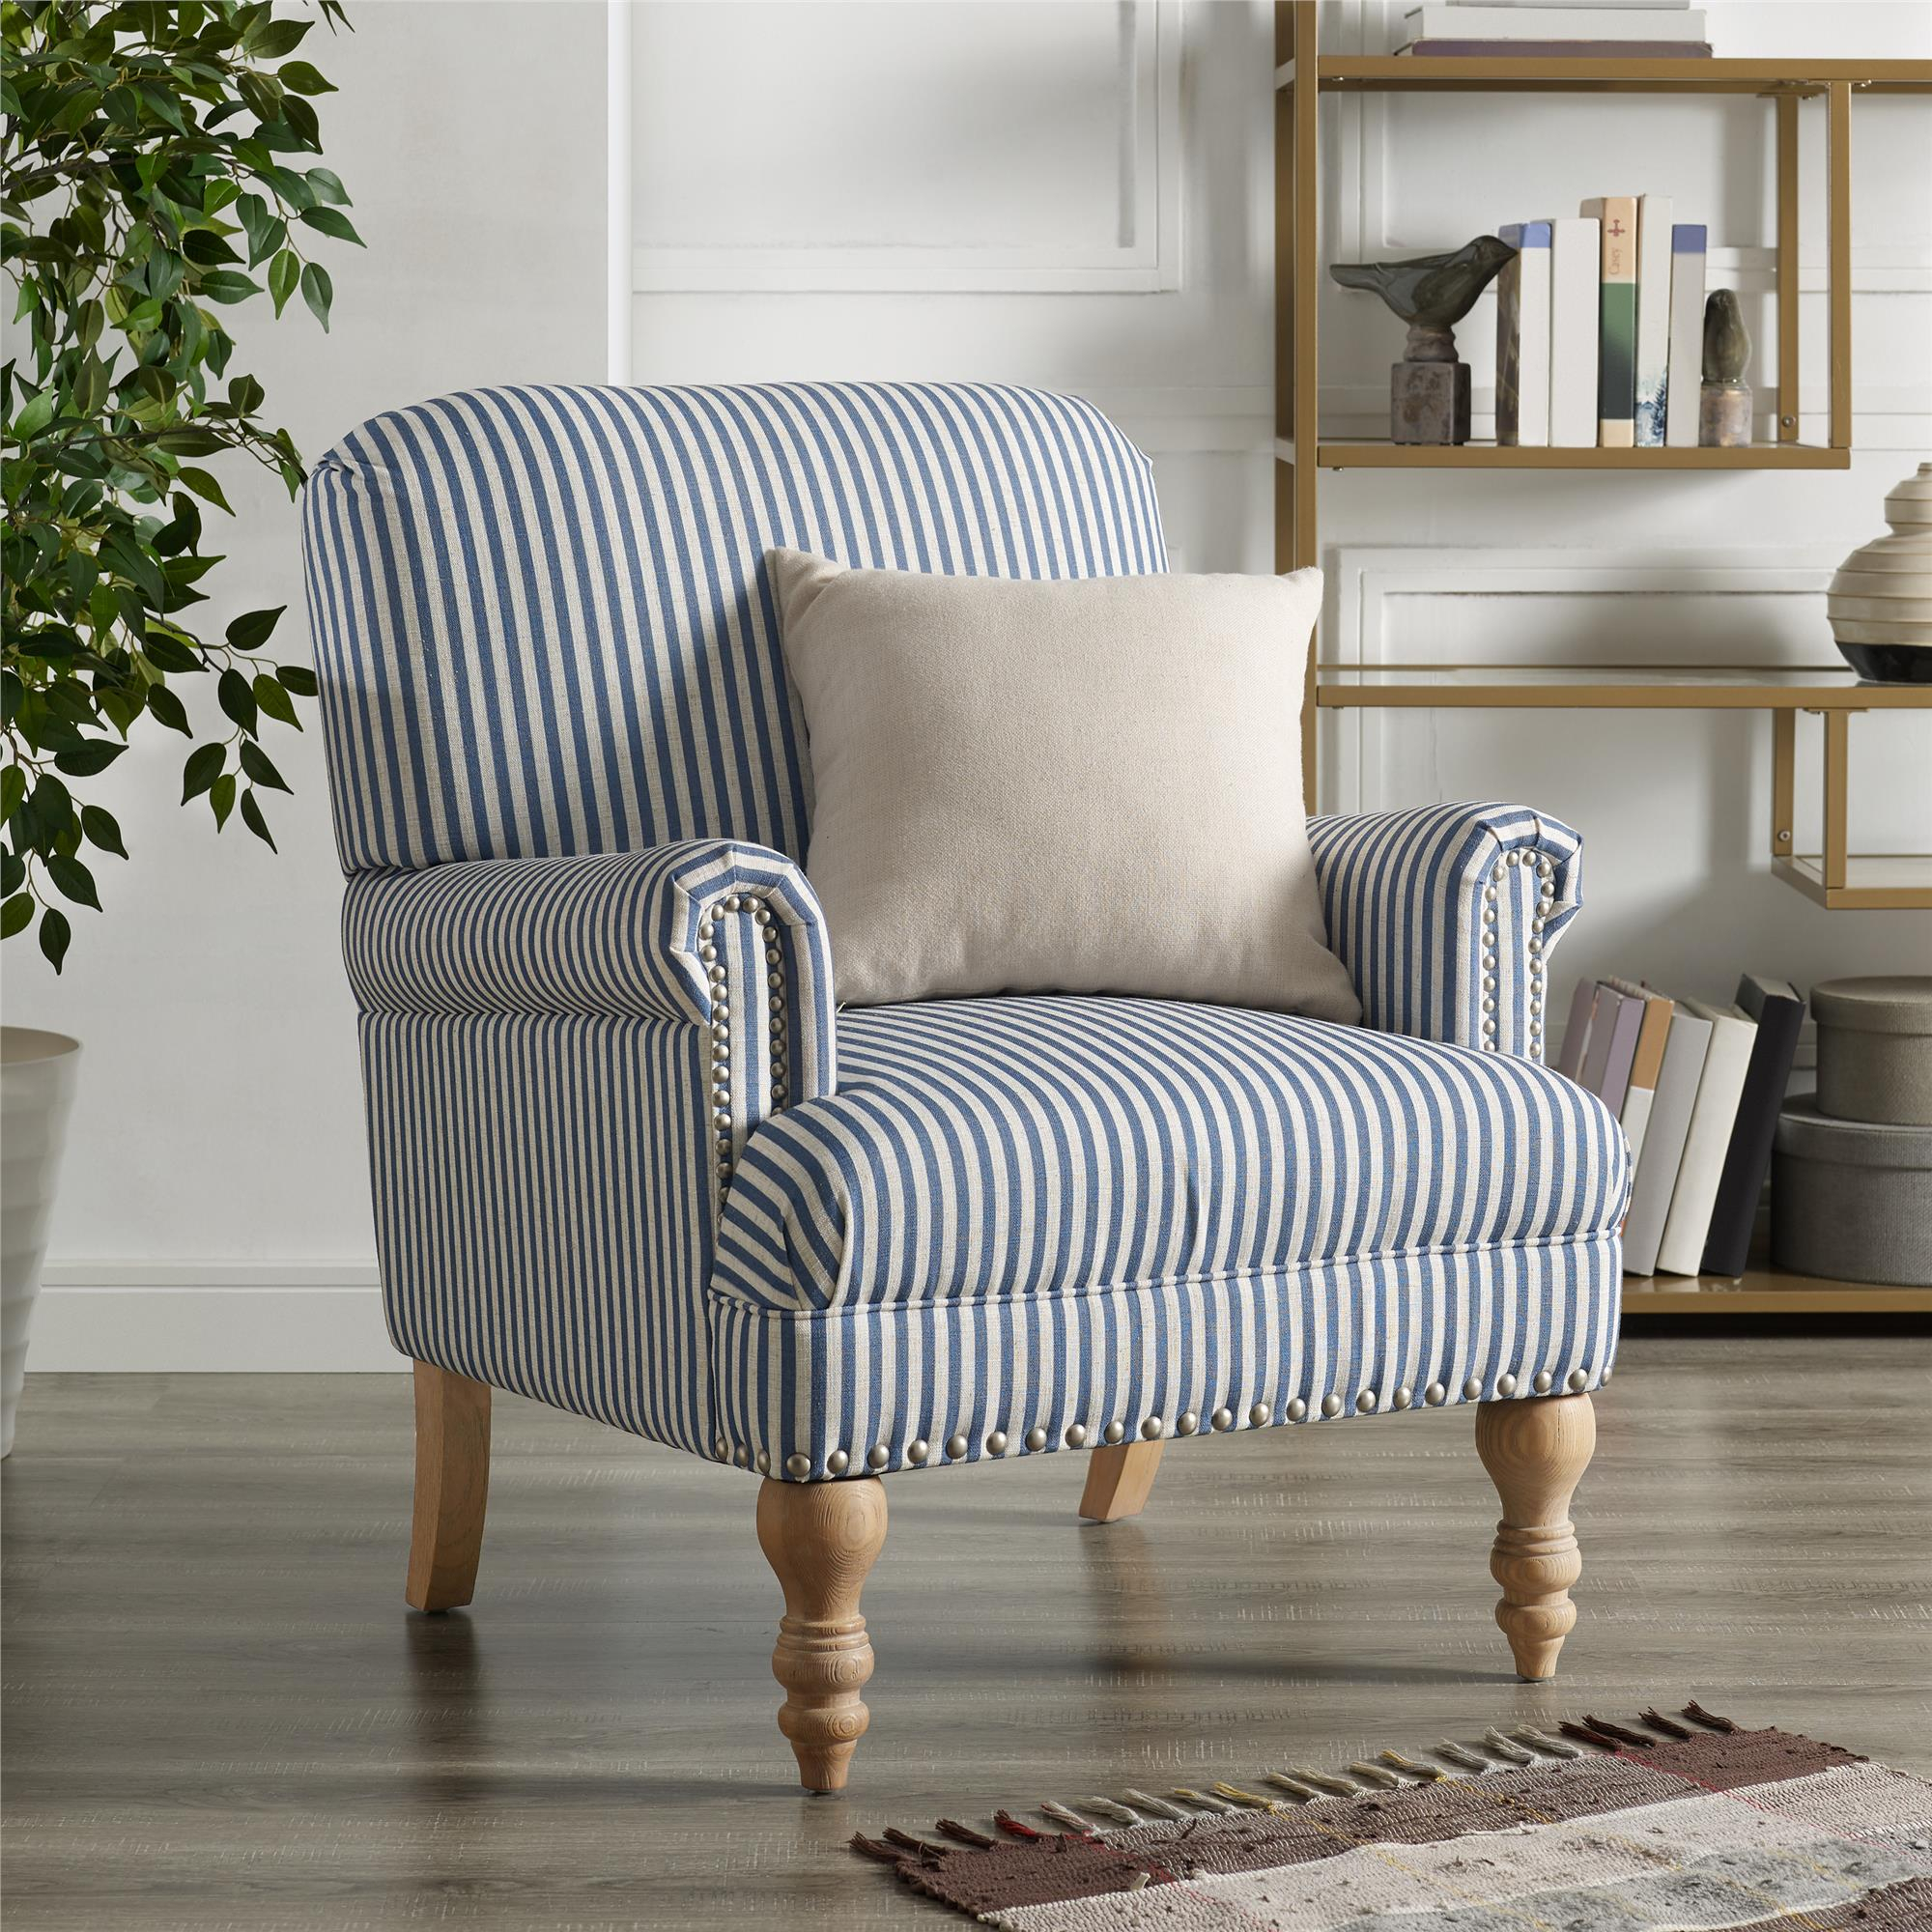 Dorel Living Jaya Accent Chair, Blue Stripe – Walmart Intended For Striped Sofas And Chairs (View 3 of 15)